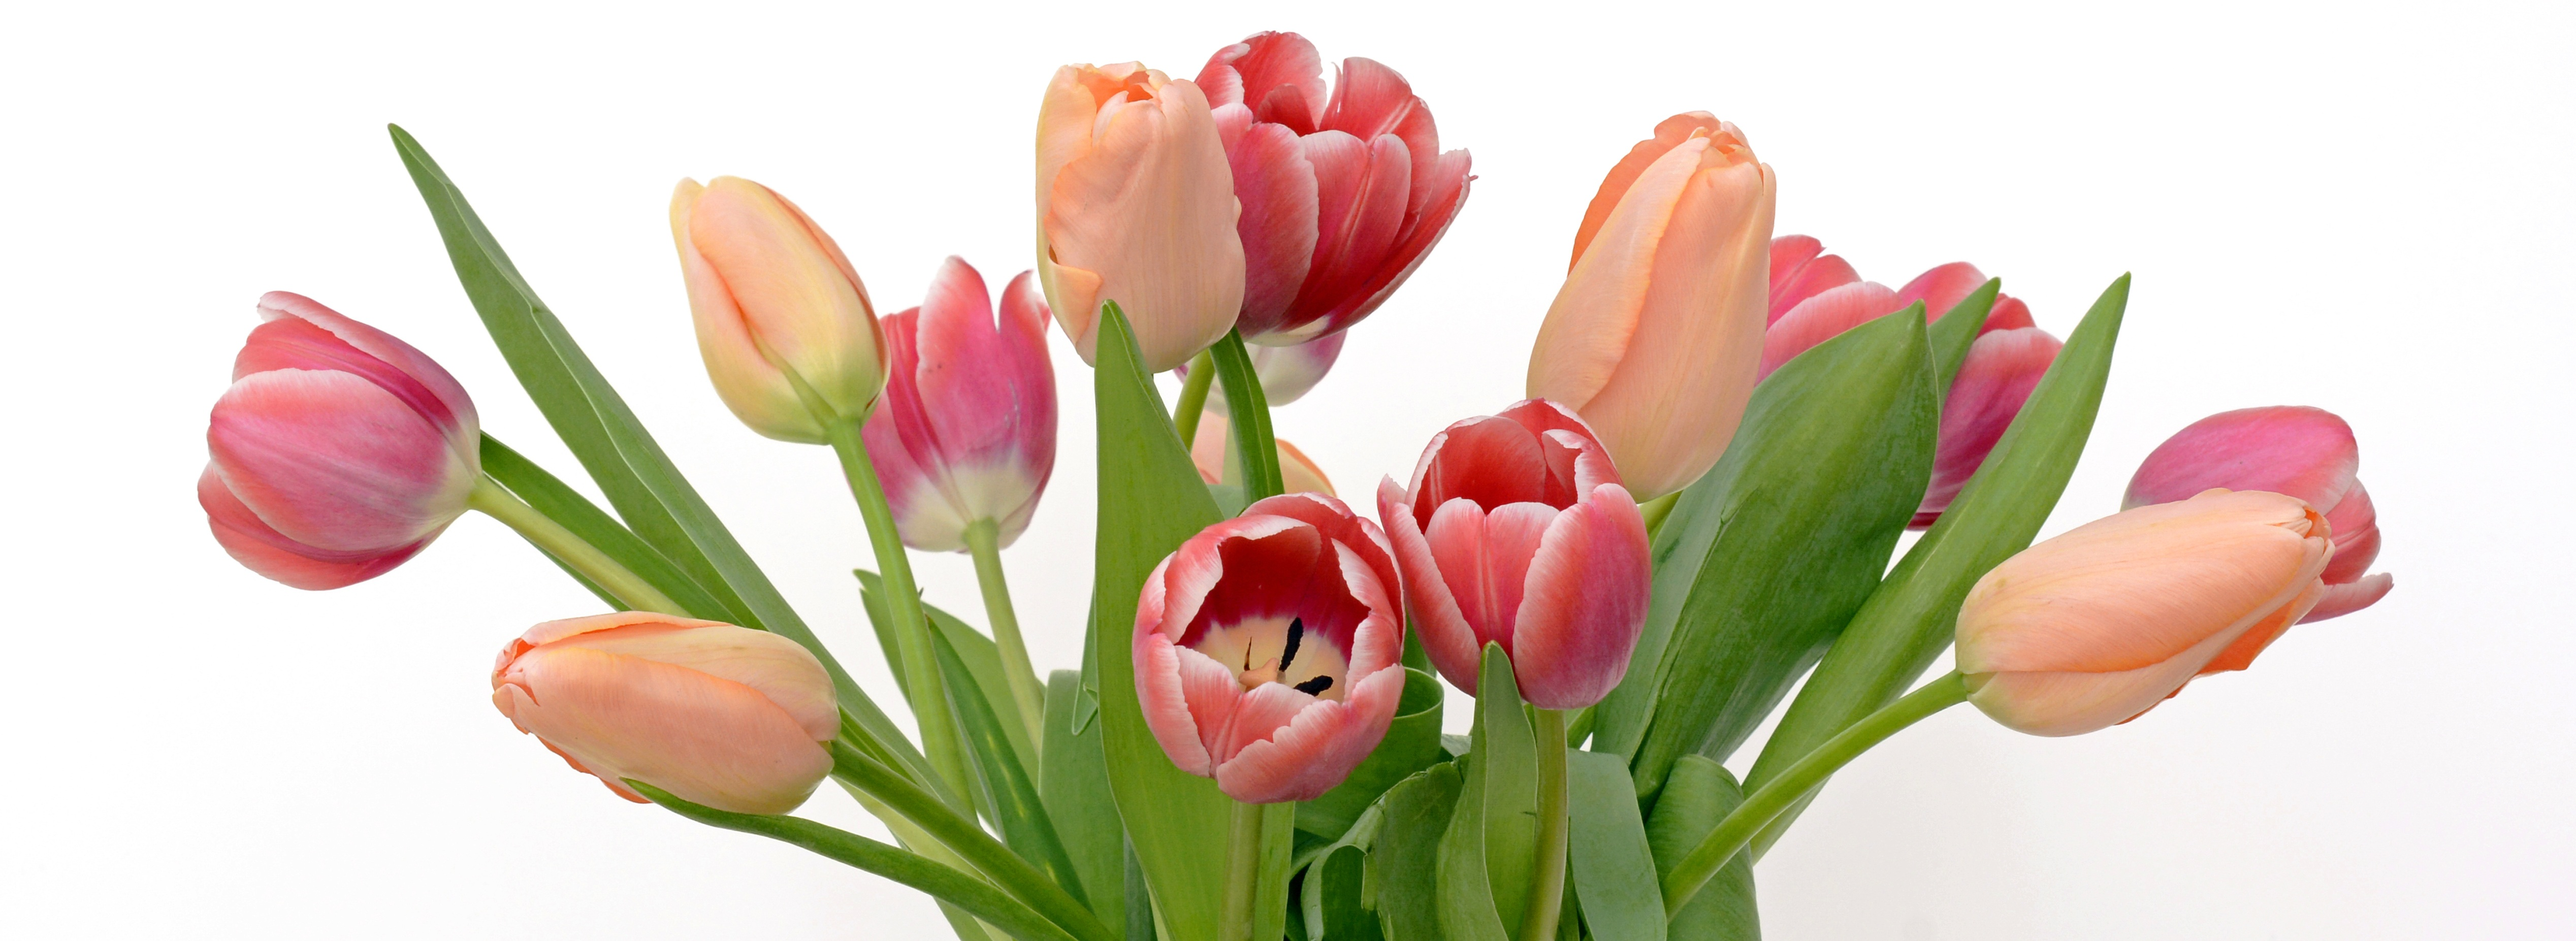 Pink and white tulips bouquet - Photopublicdomain.com